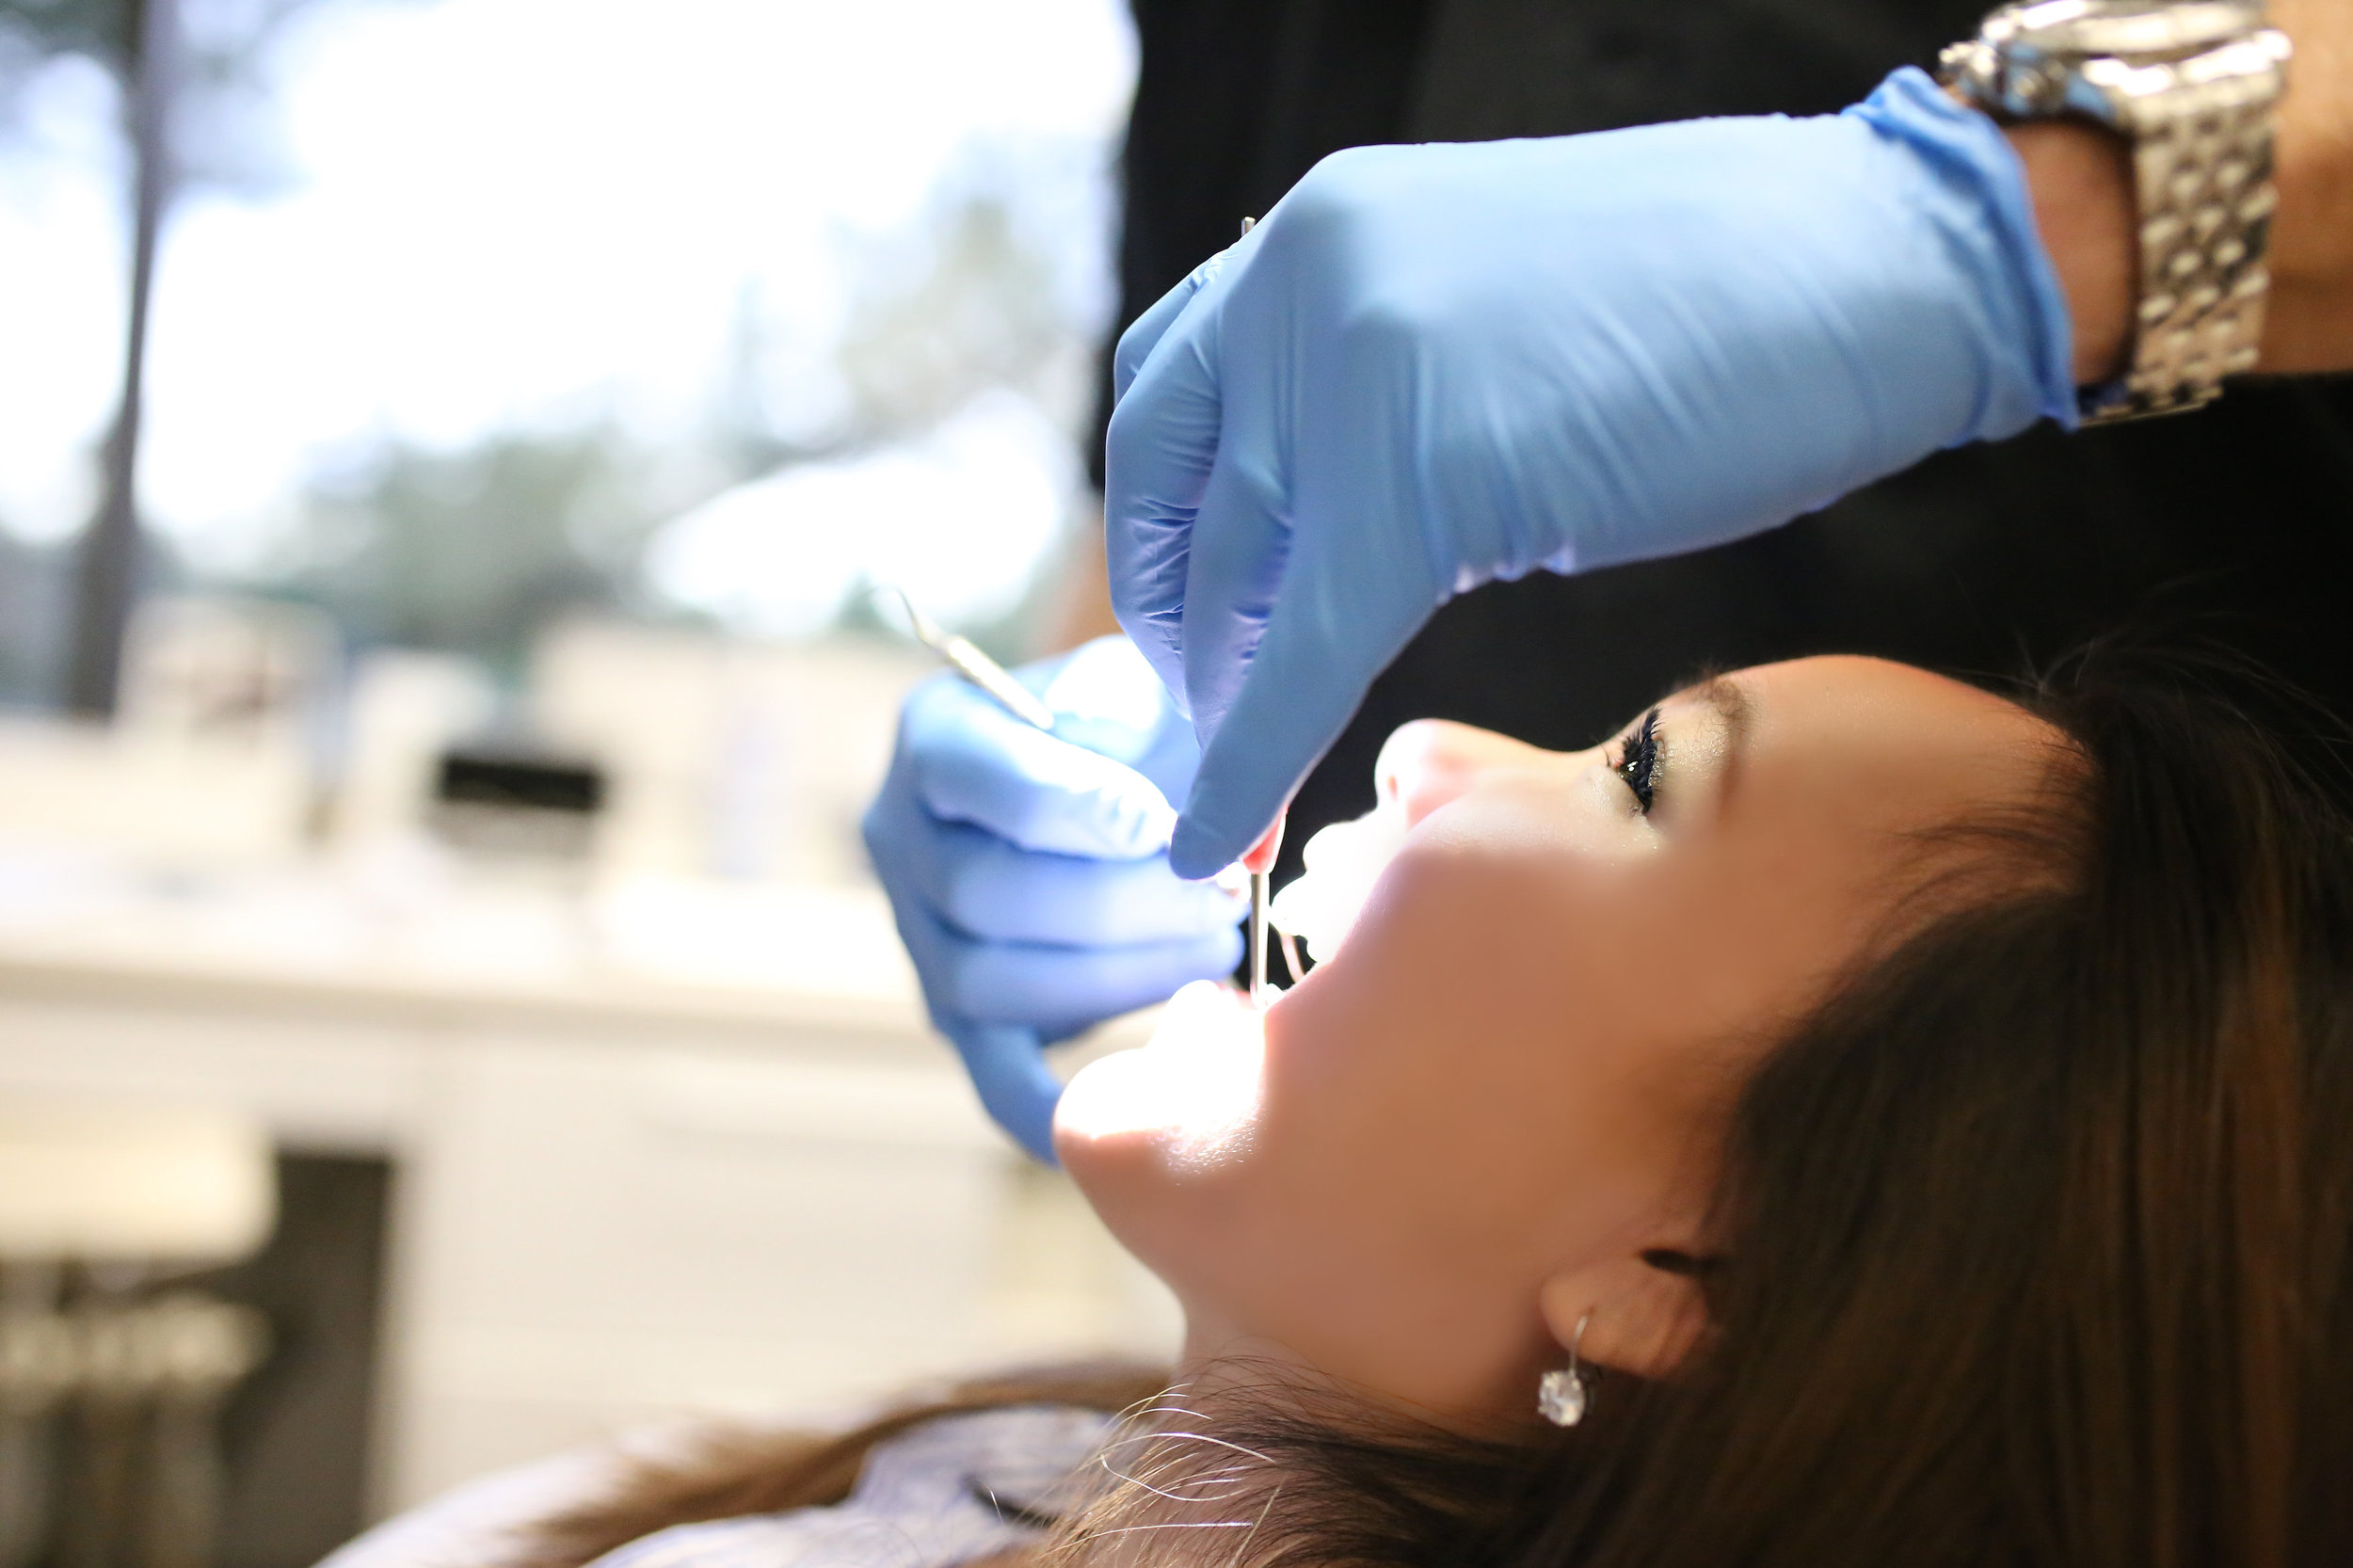 Specializing in General & Cosmetic Dentistry